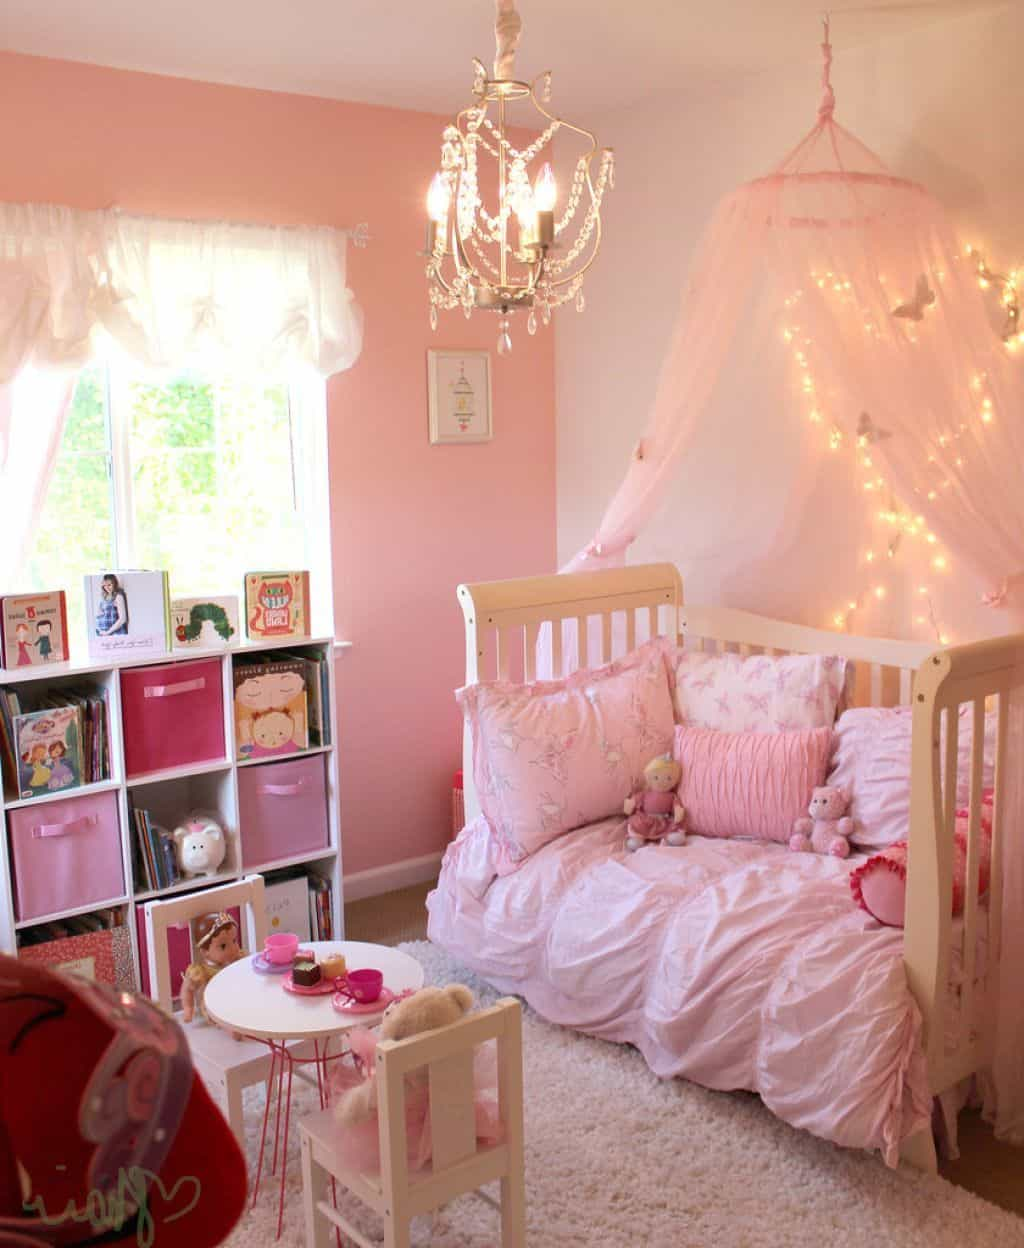 Pink Girls Room: 32 Cheery Designs For A Little Girl's Dream Bedroom